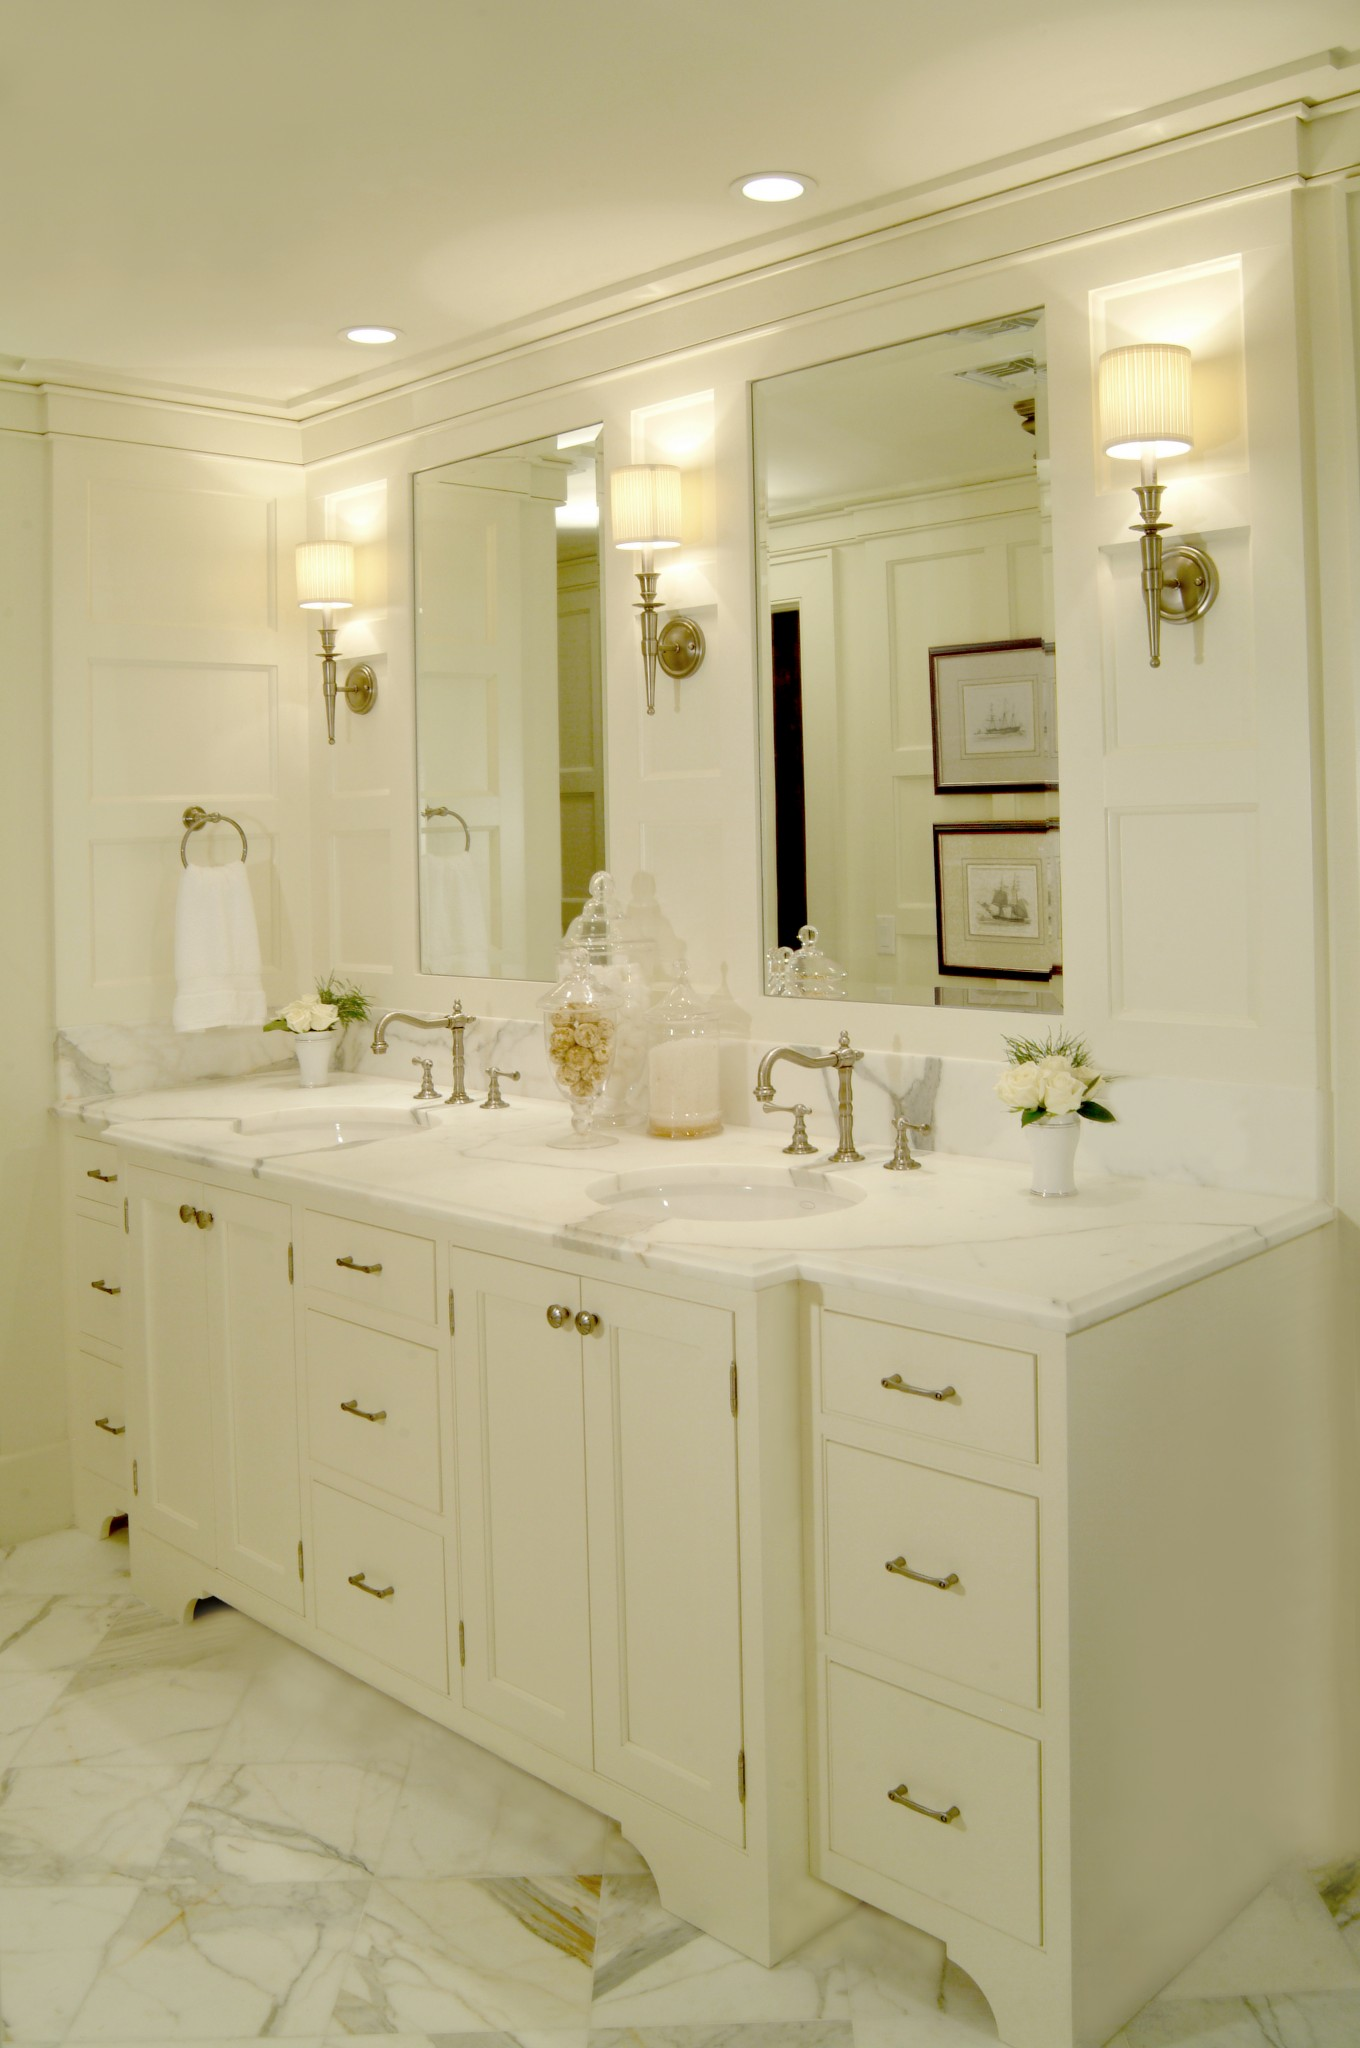 Master Bathroom Double Sink Vanity With Marble Floor Tile And Counter Top.  White Painted Wood